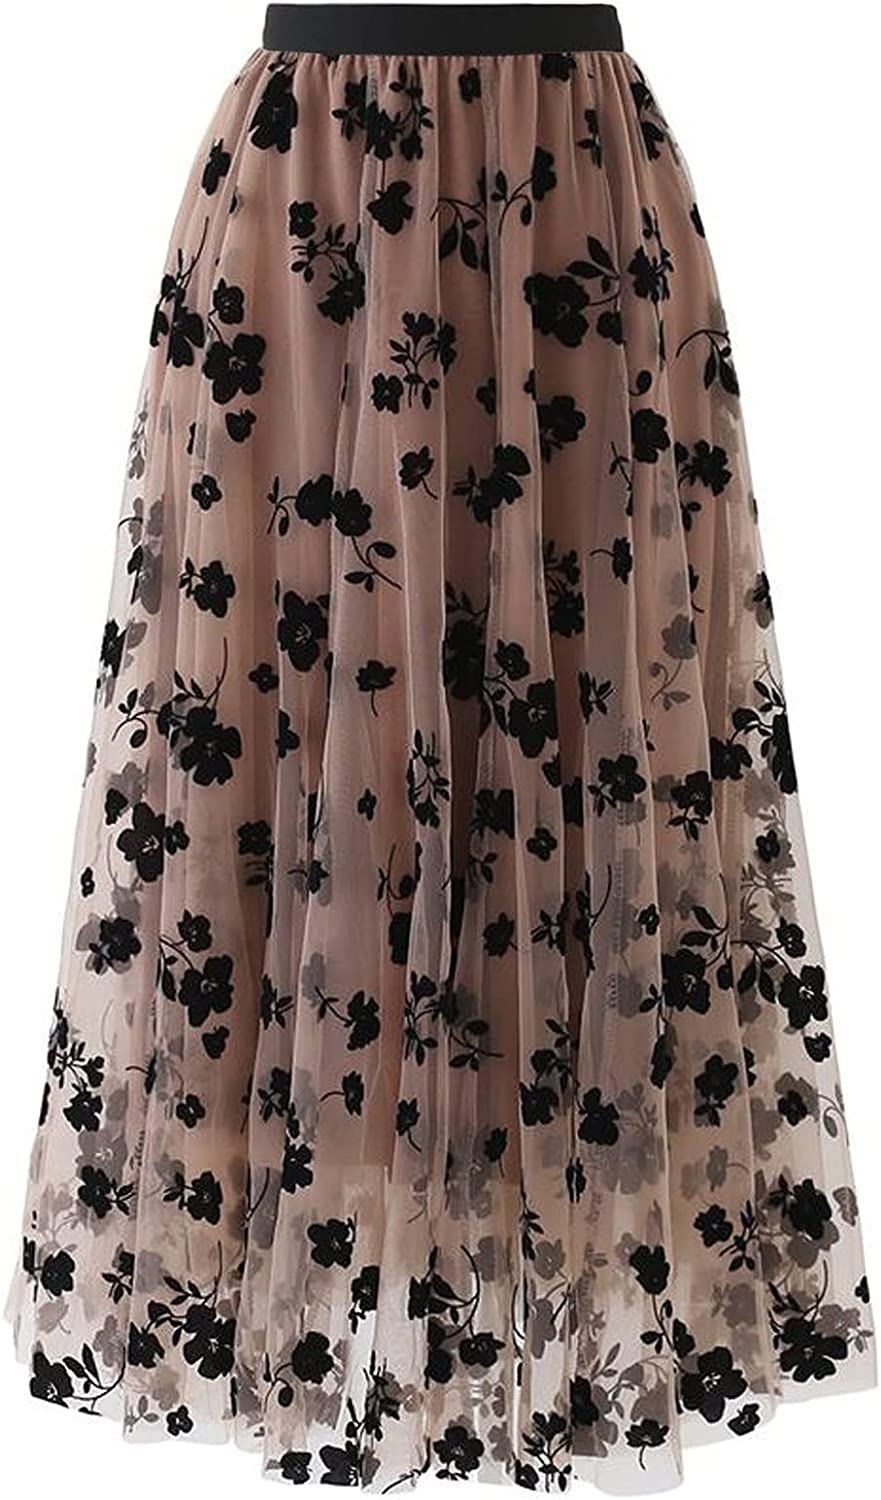 WinVic High Waist Long Skirts for Women Summer Elegant Mesh Floral Print Pleated A-Line Flared Maxi Skirt